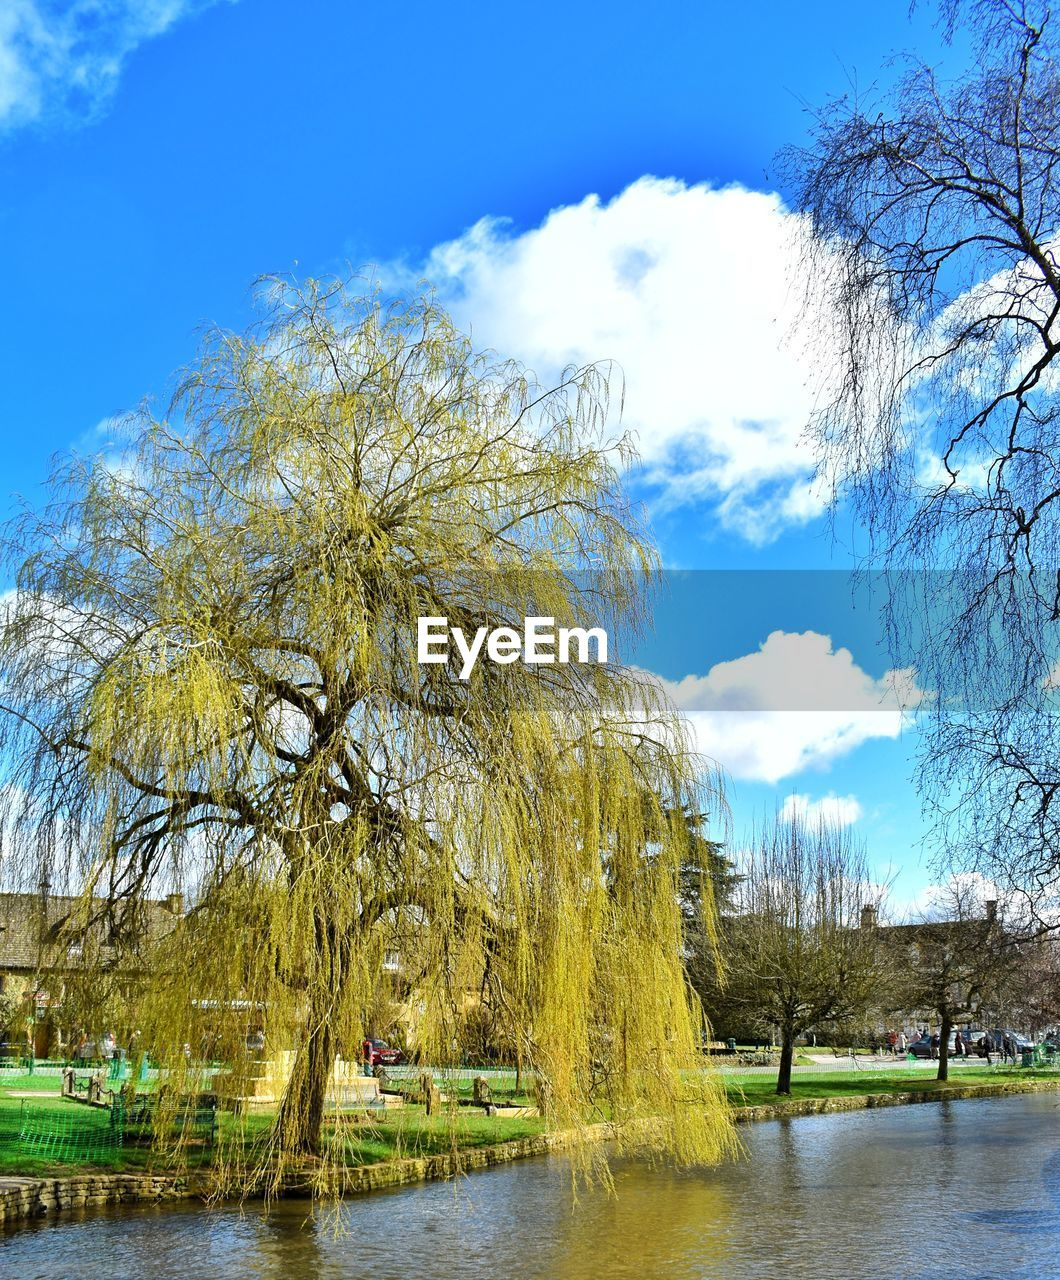 tree, water, plant, sky, cloud - sky, beauty in nature, nature, tranquility, tranquil scene, scenics - nature, no people, day, growth, lake, non-urban scene, waterfront, yellow, willow tree, outdoors